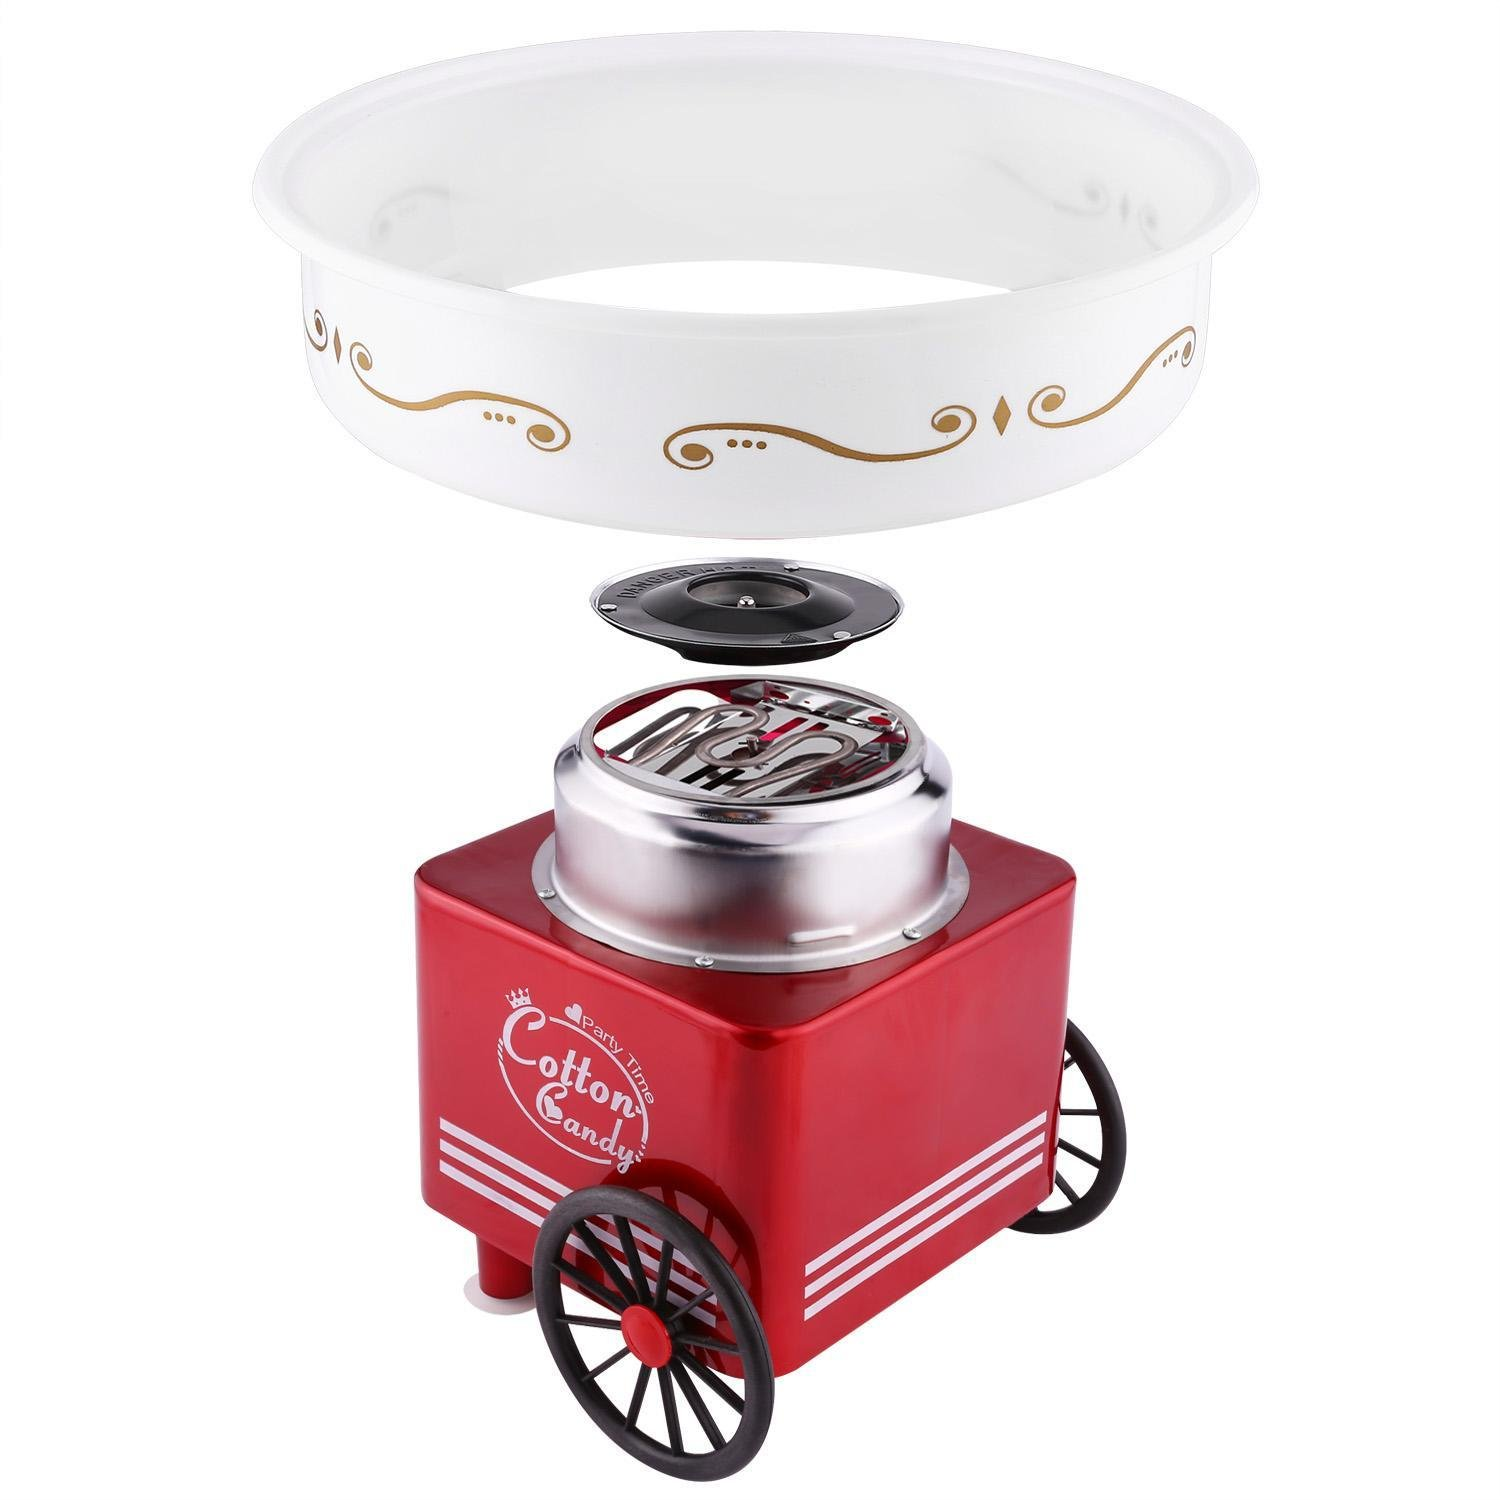 Utheing Cotton Candy Machine, Stainless Steel Safe Red Cotton Candy Maker for Kids